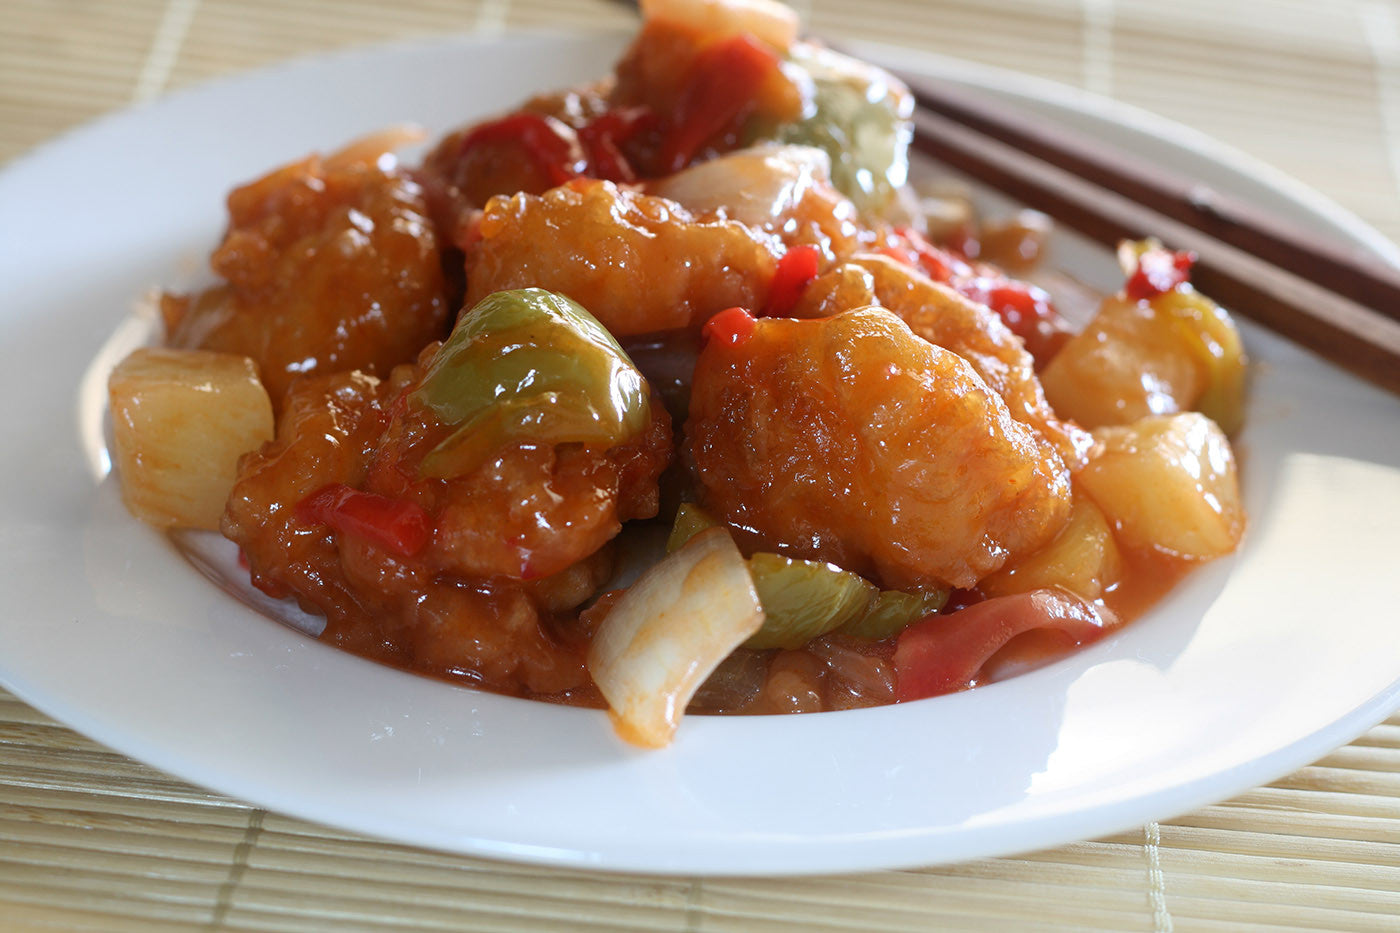 Easy, Delicious Clay Pot Veggies & Honey Garlic Chicken